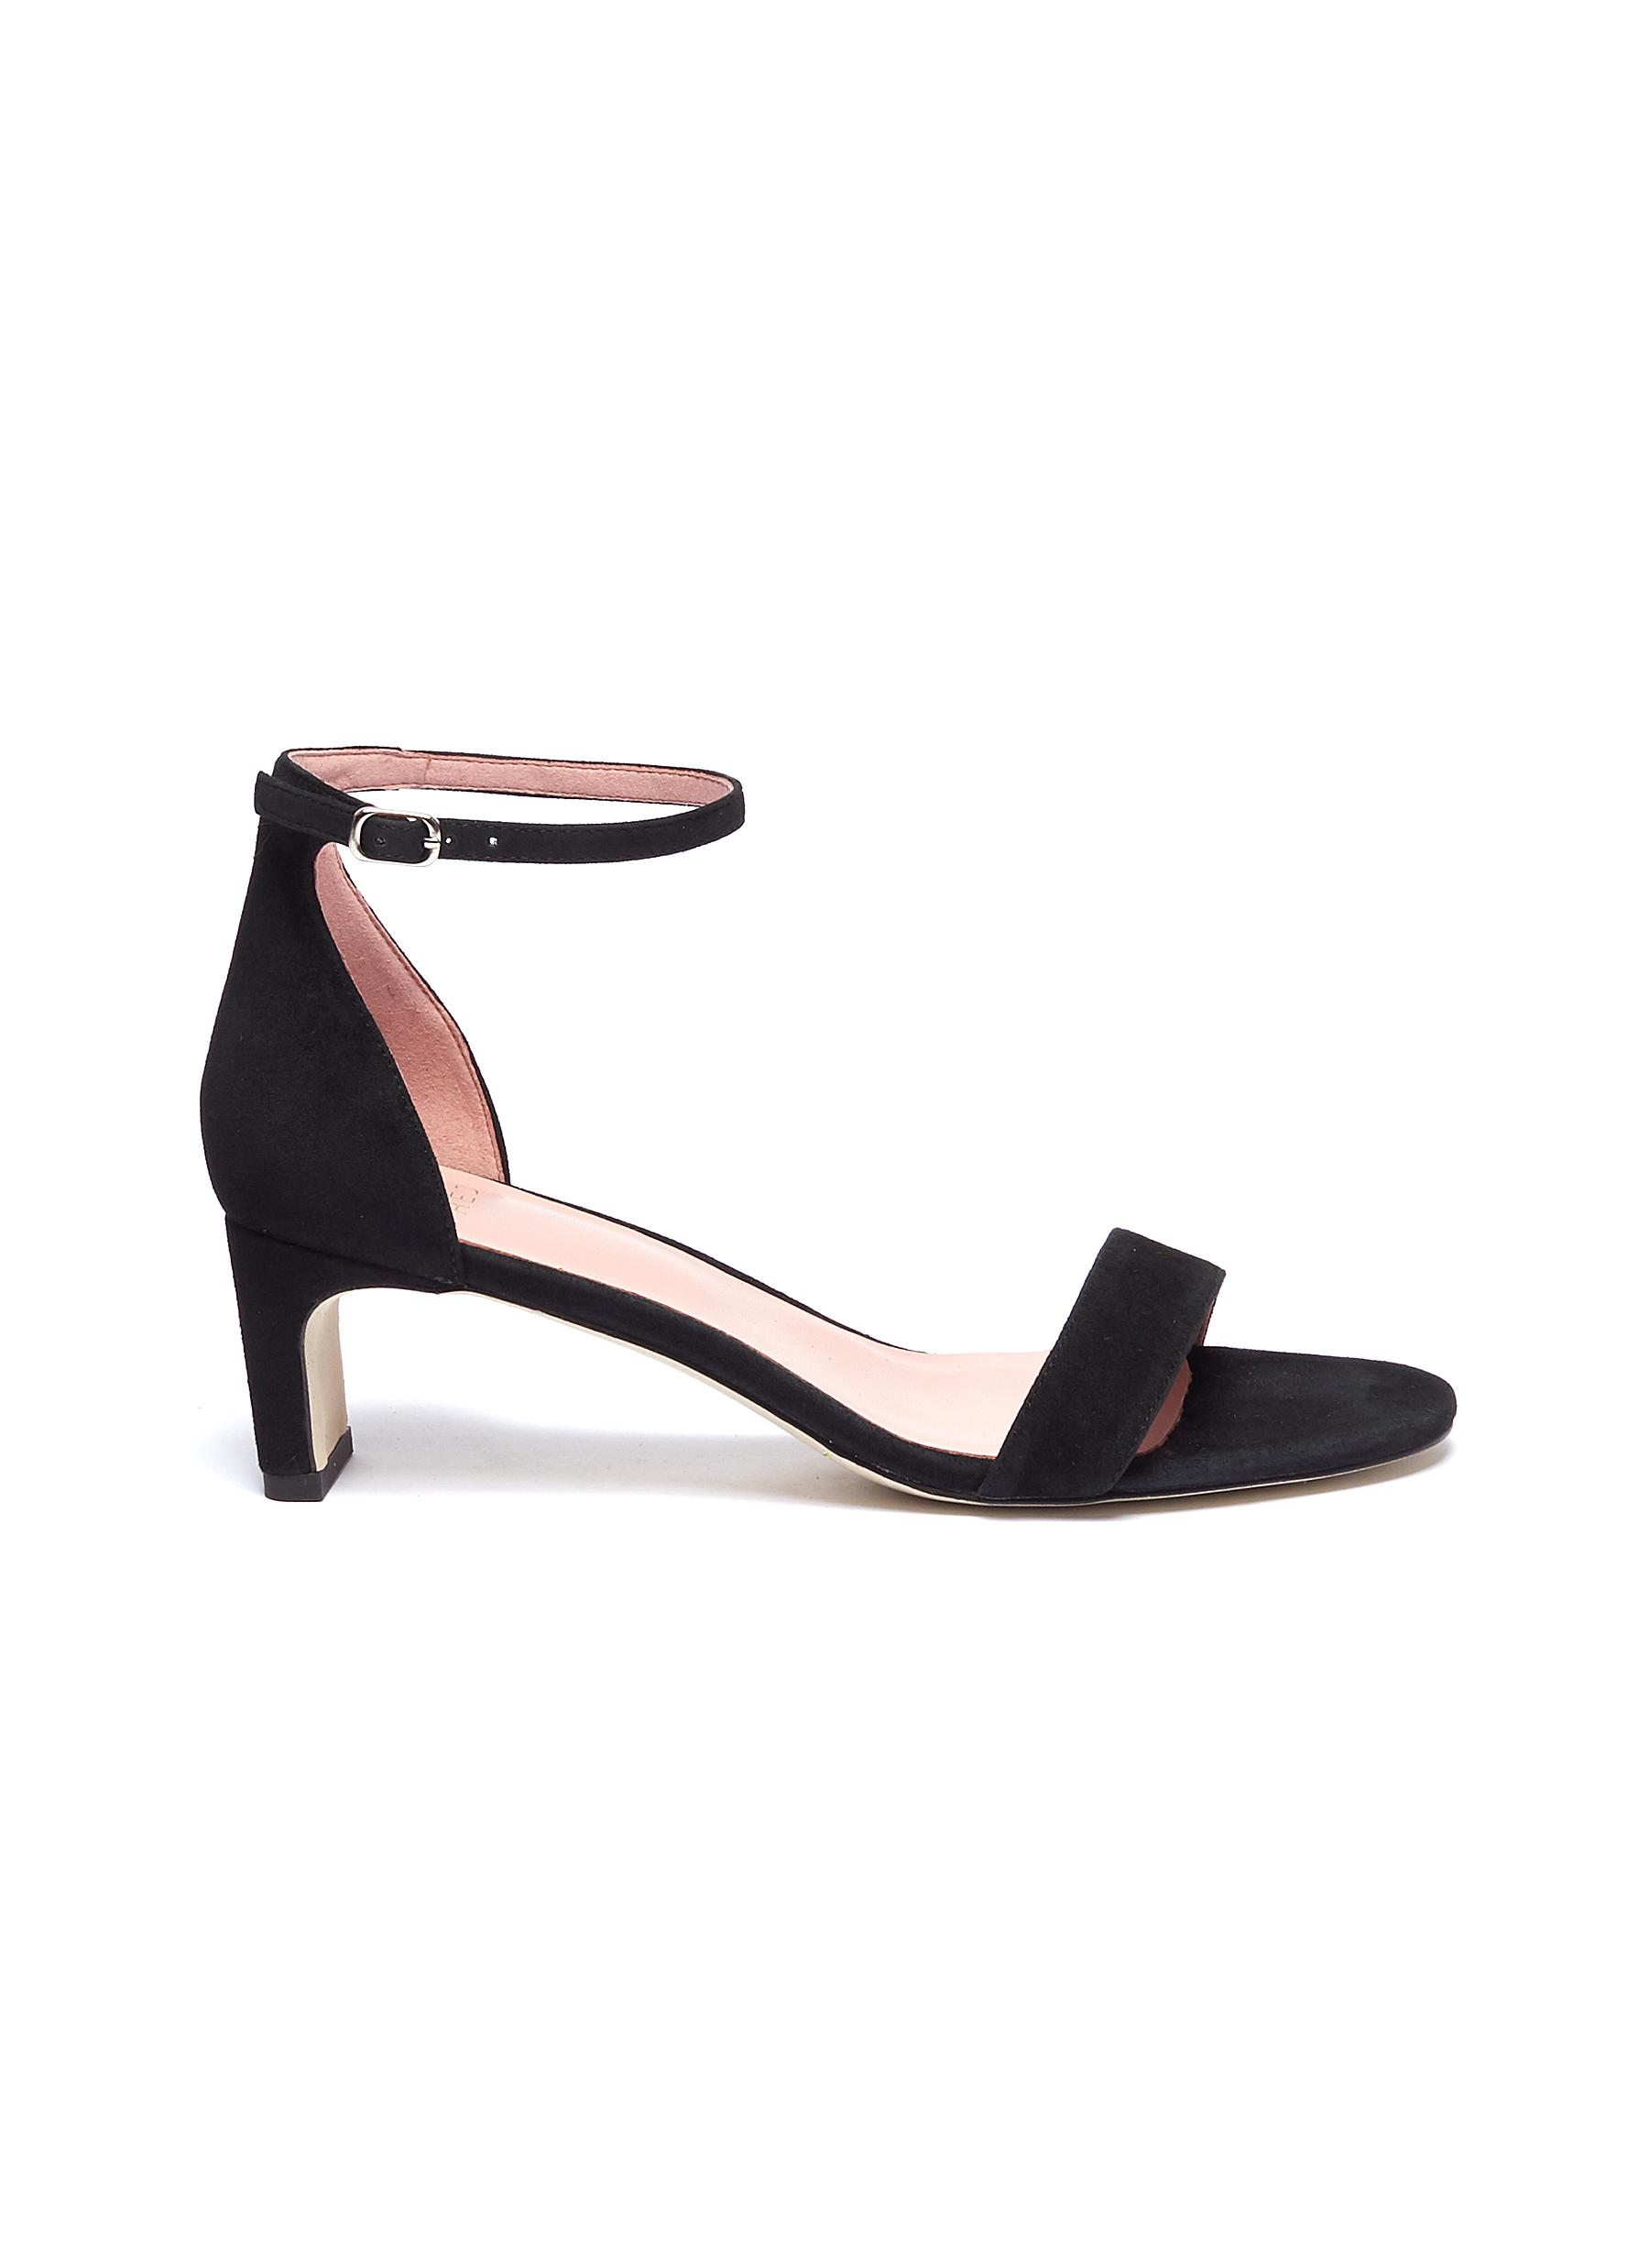 Aidan ankle strap suede sandals by Pedder Red